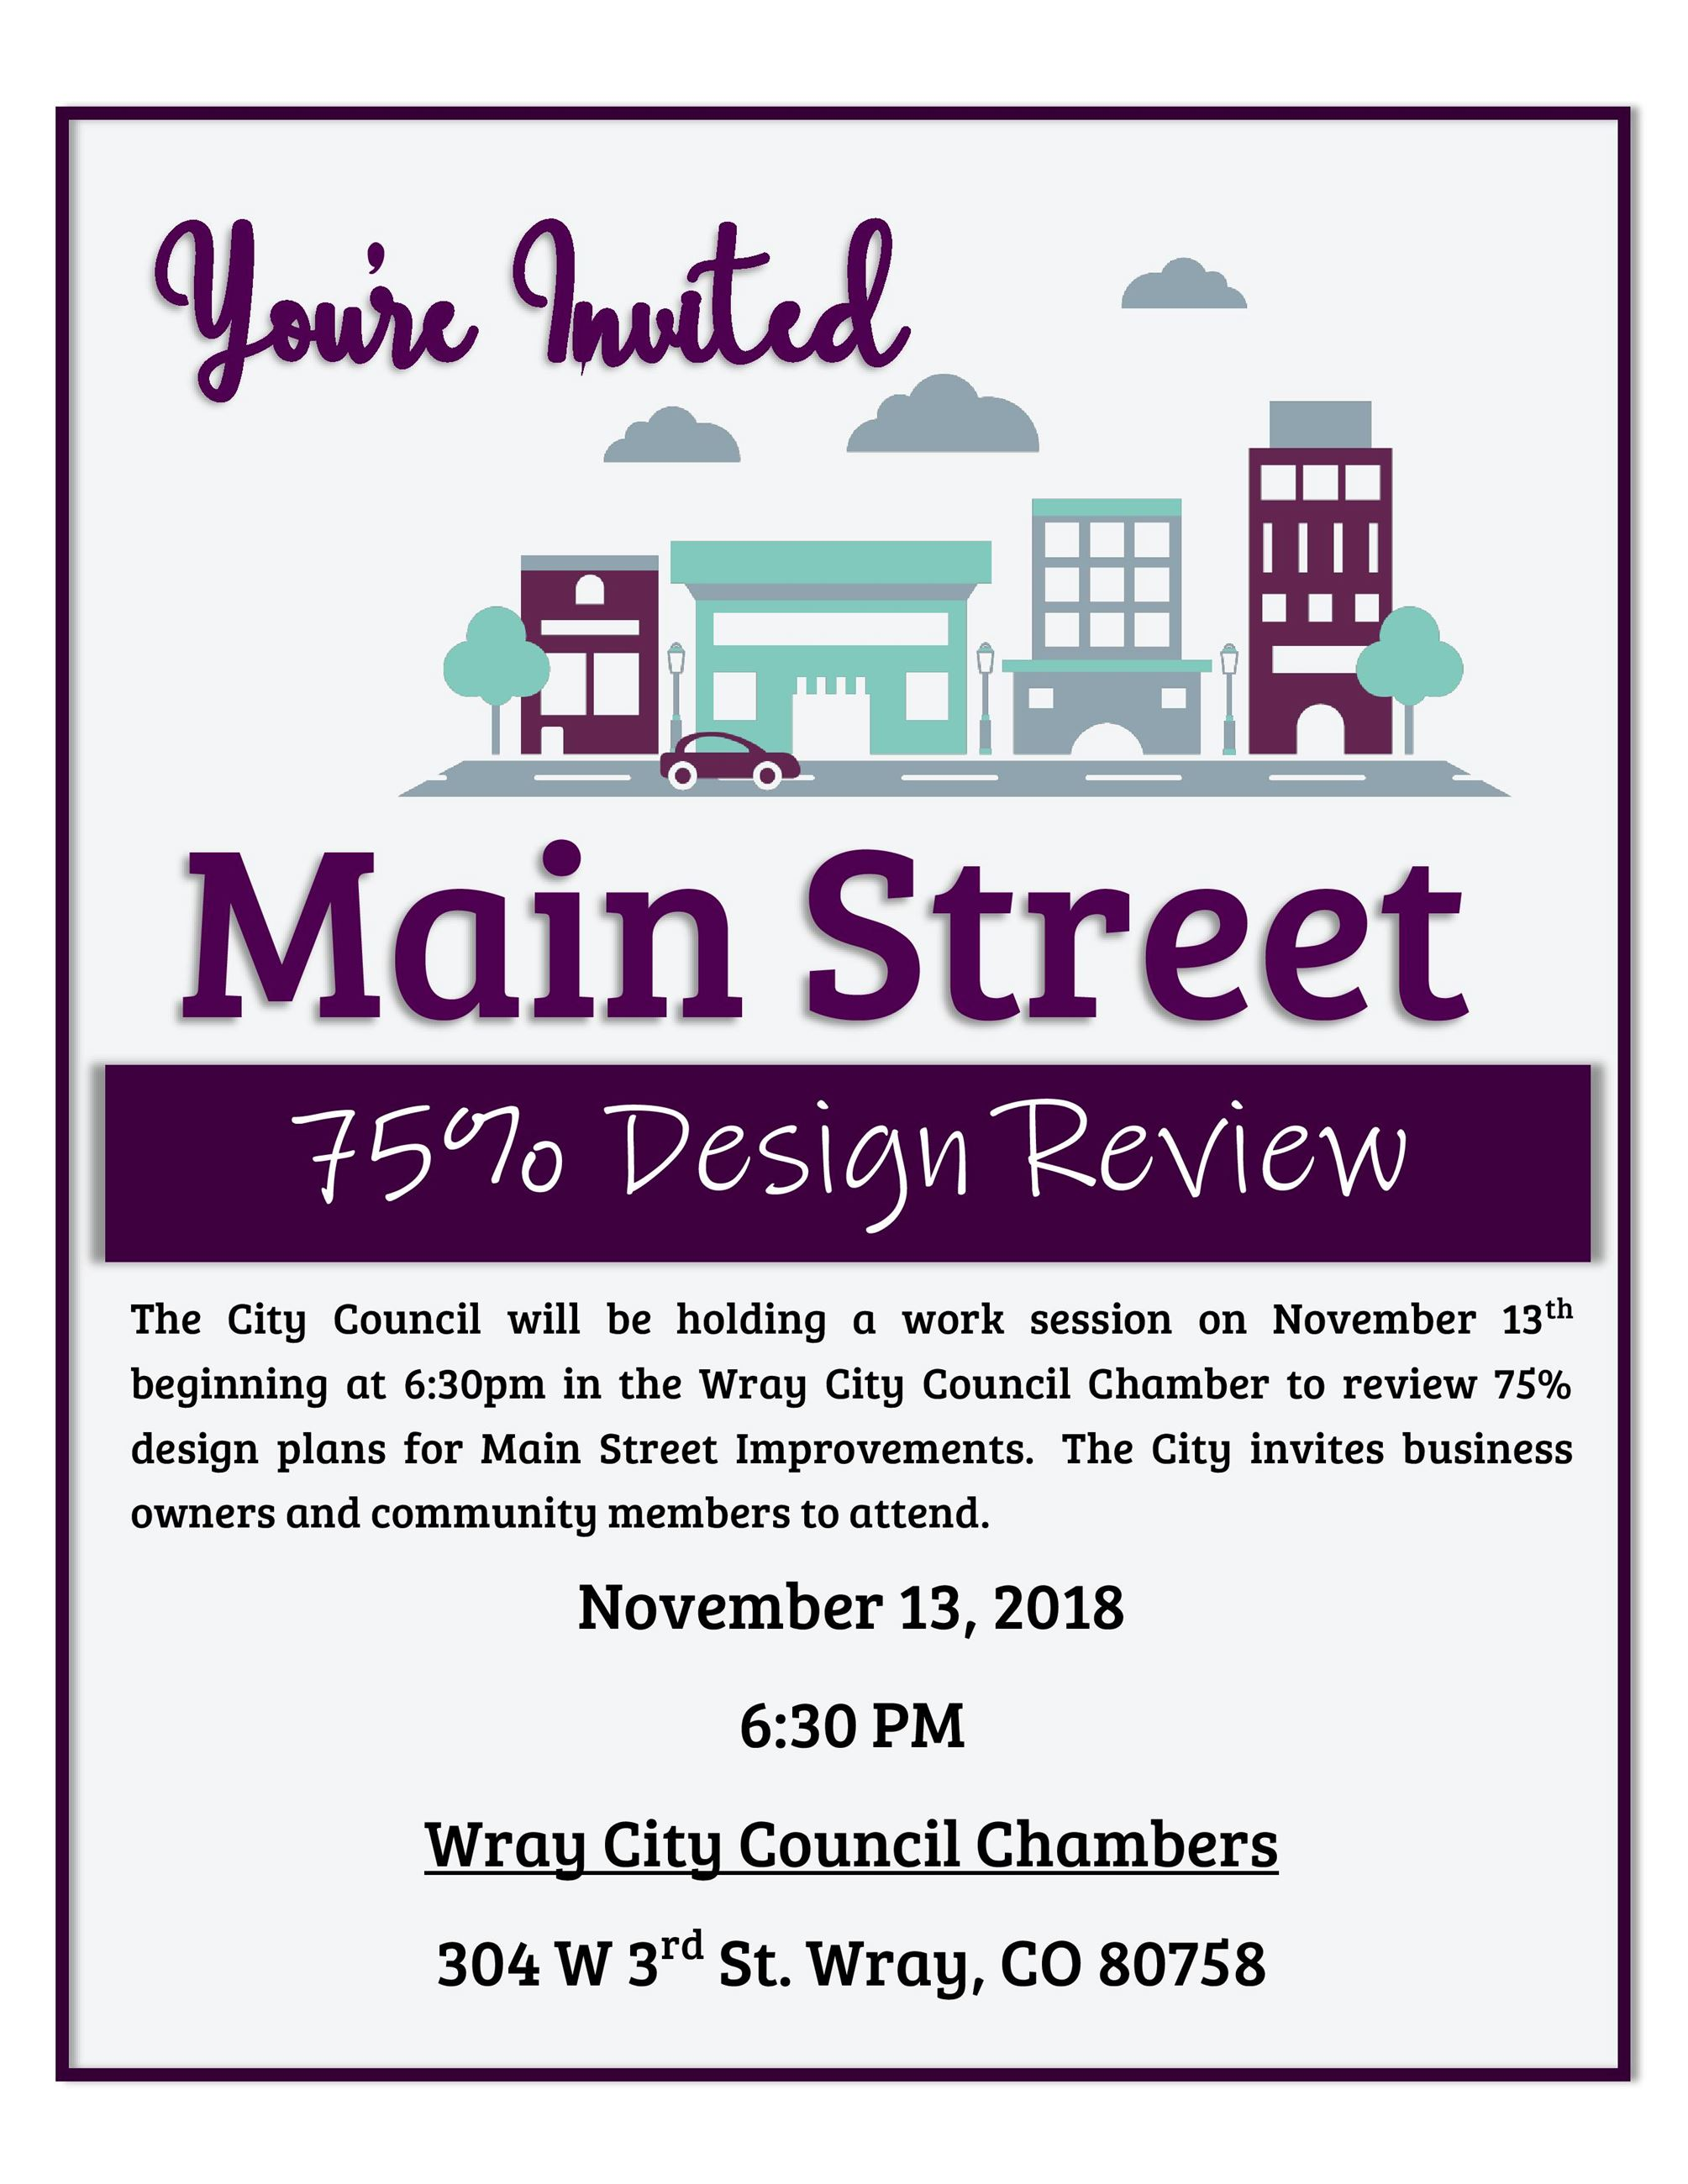 Main Street75% Design Review Invitation